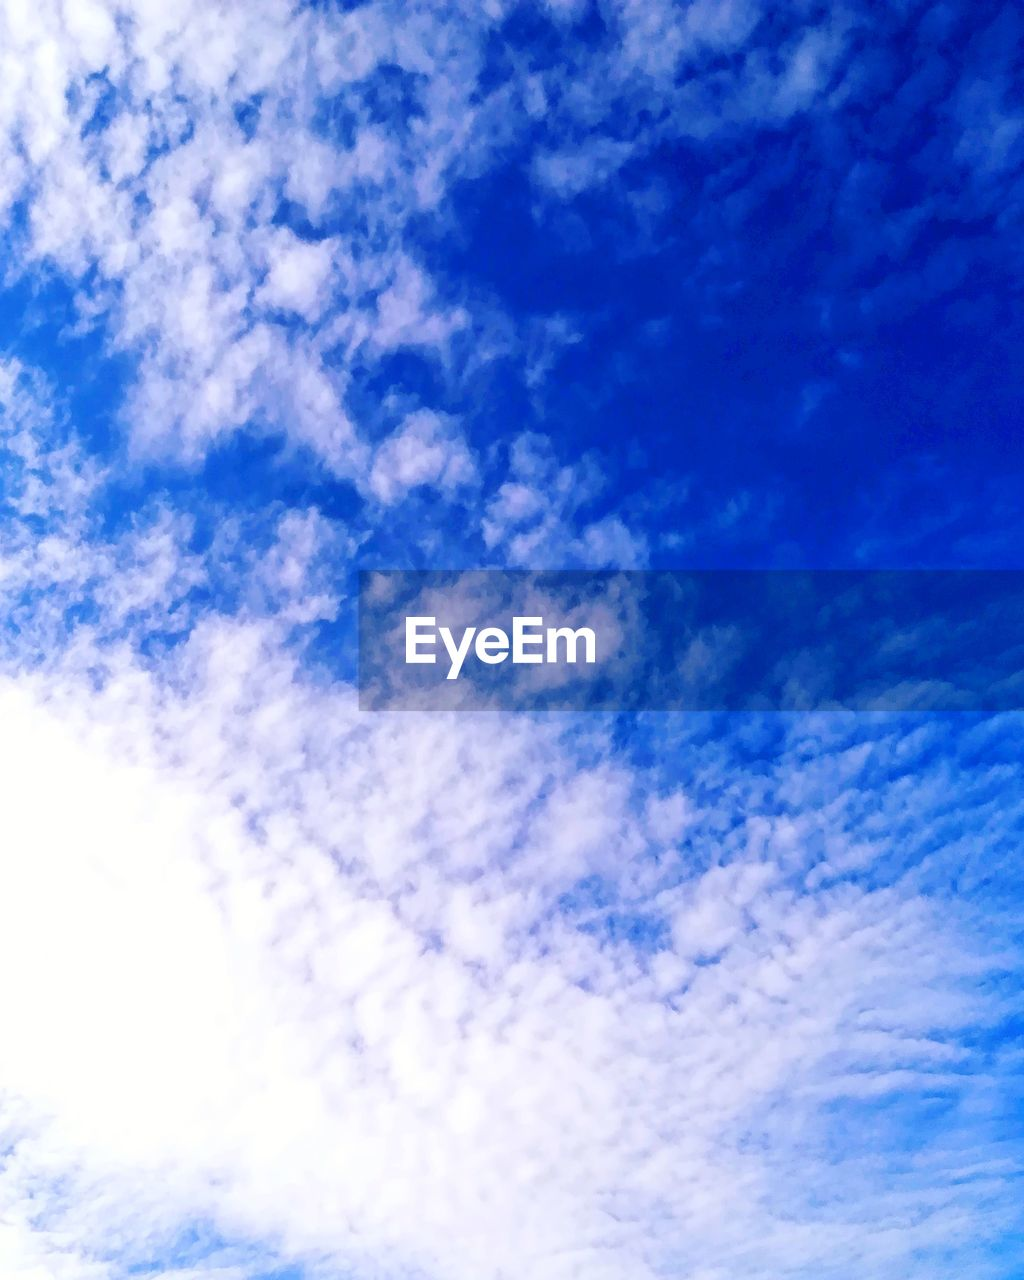 cloud - sky, sky, blue, low angle view, scenics - nature, tranquility, beauty in nature, white color, no people, tranquil scene, nature, backgrounds, day, full frame, outdoors, idyllic, meteorology, cloudscape, wispy